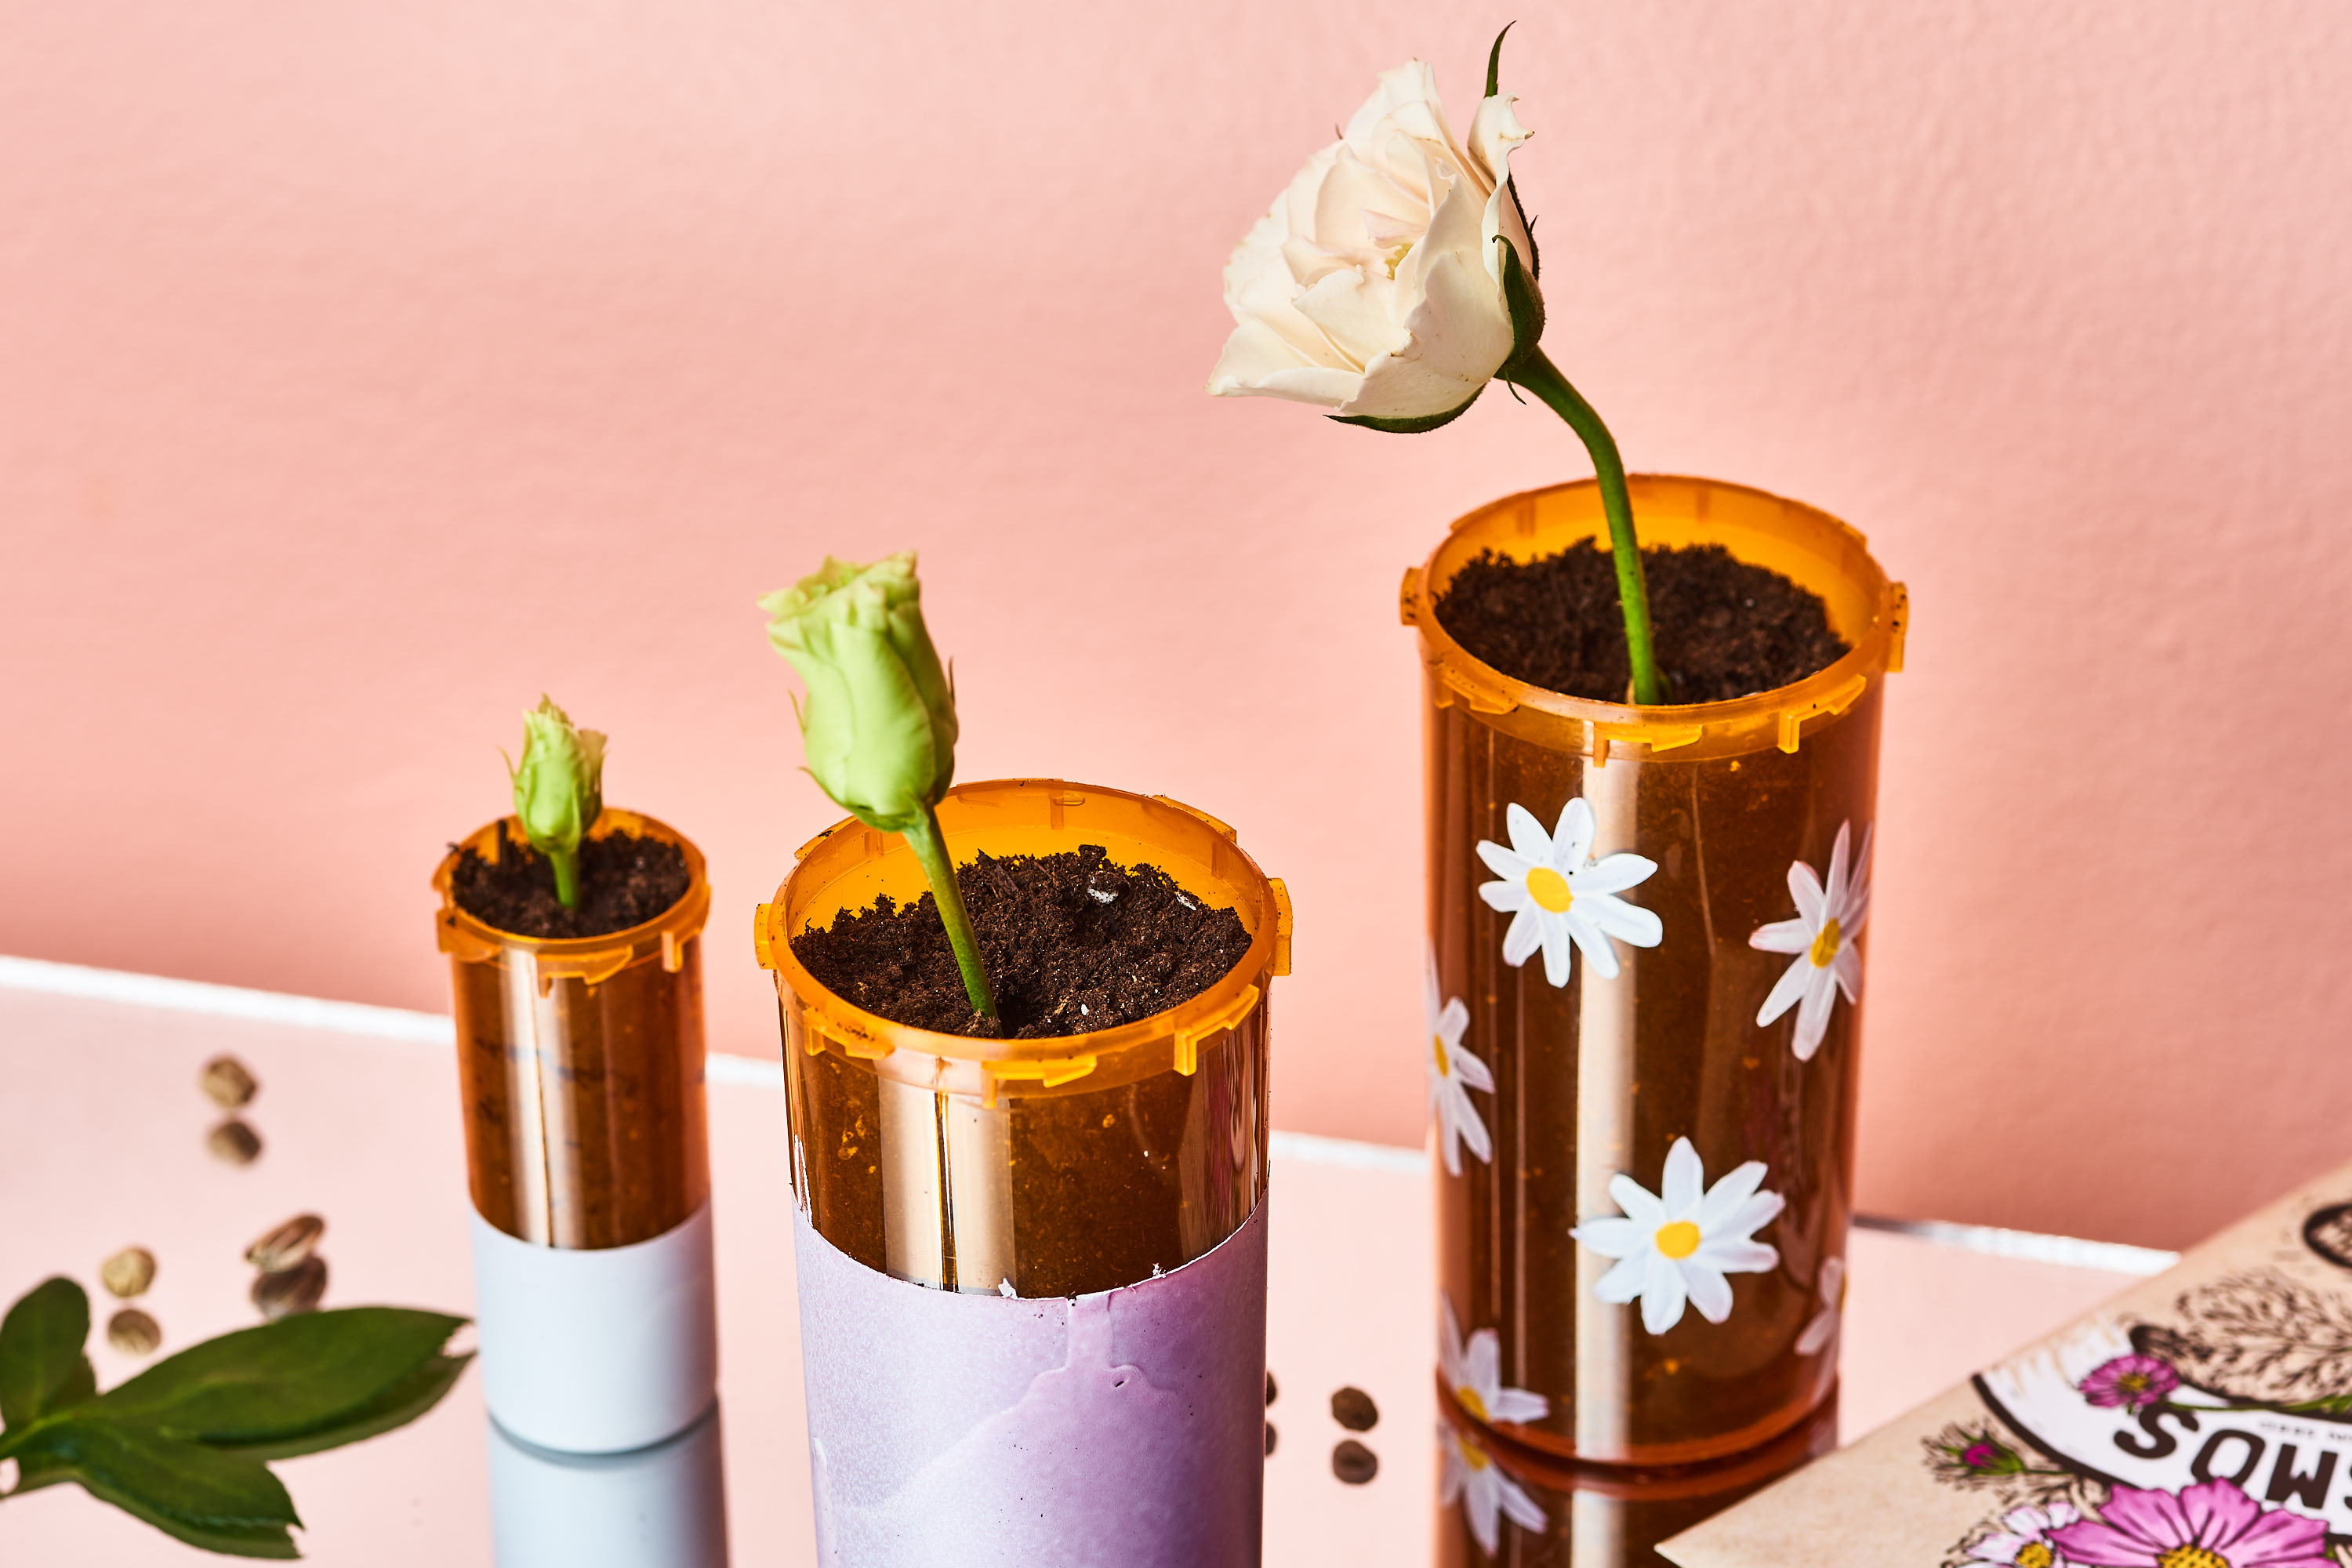 25 New Ways To Reuse And Recycle Your Old Pill Bottles Apartment Therapy